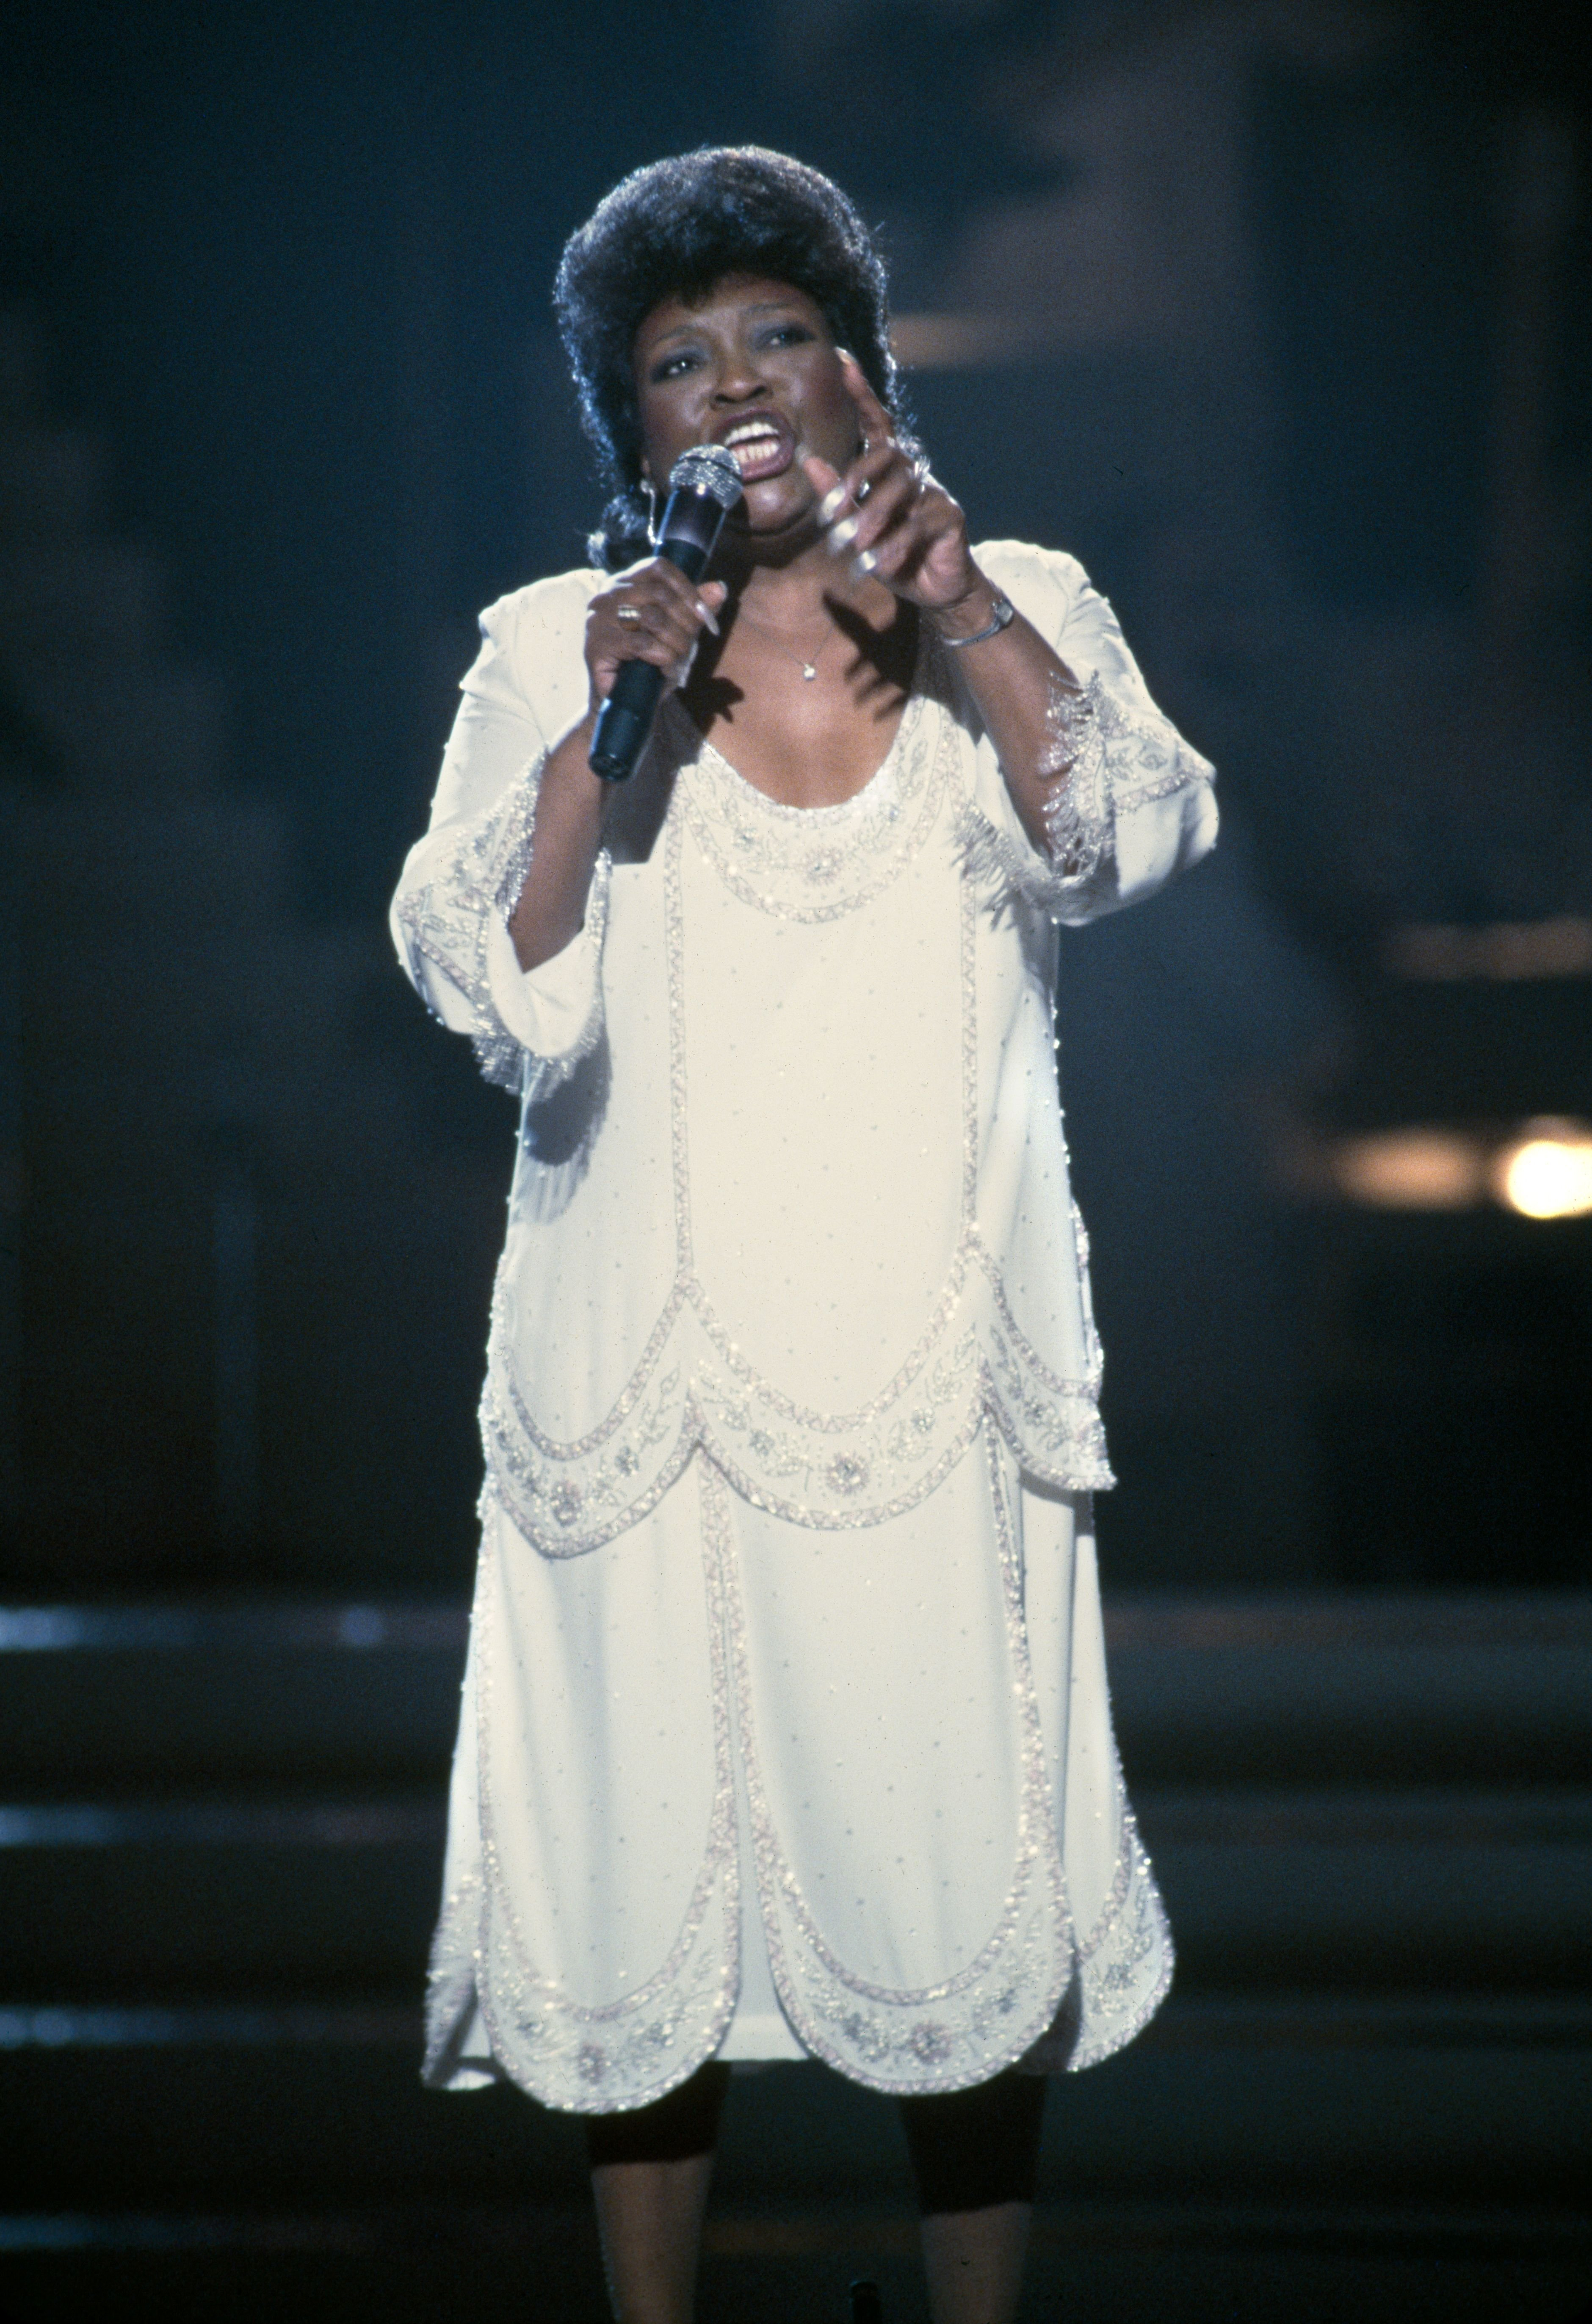 Gospel singer Albertina Walker at the 26th Annual Grammy Awards held on February 28, 1984. | Photo: Getty Images